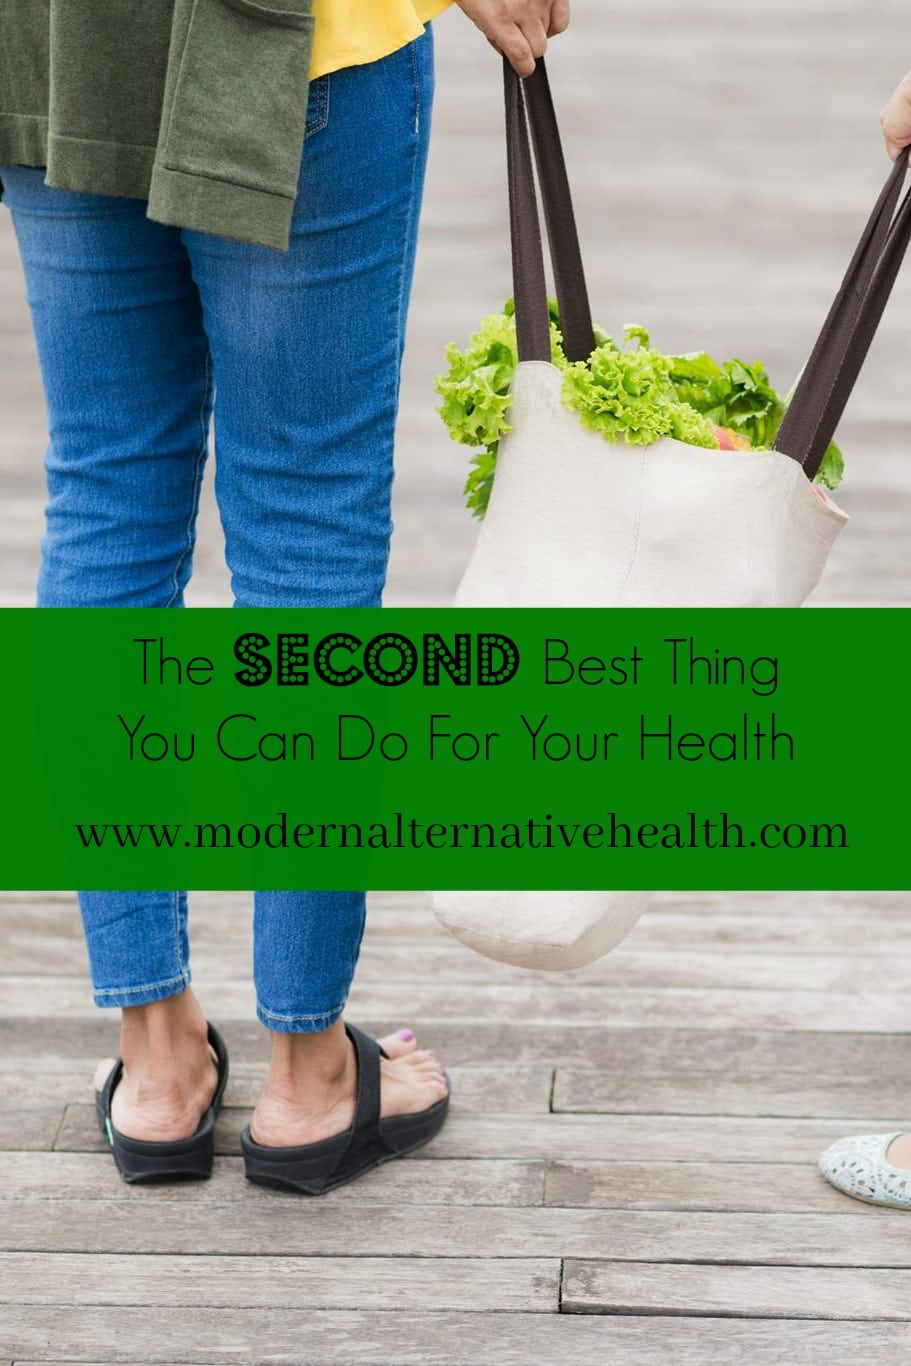 The Second Best Thing You Can Do For Your Health